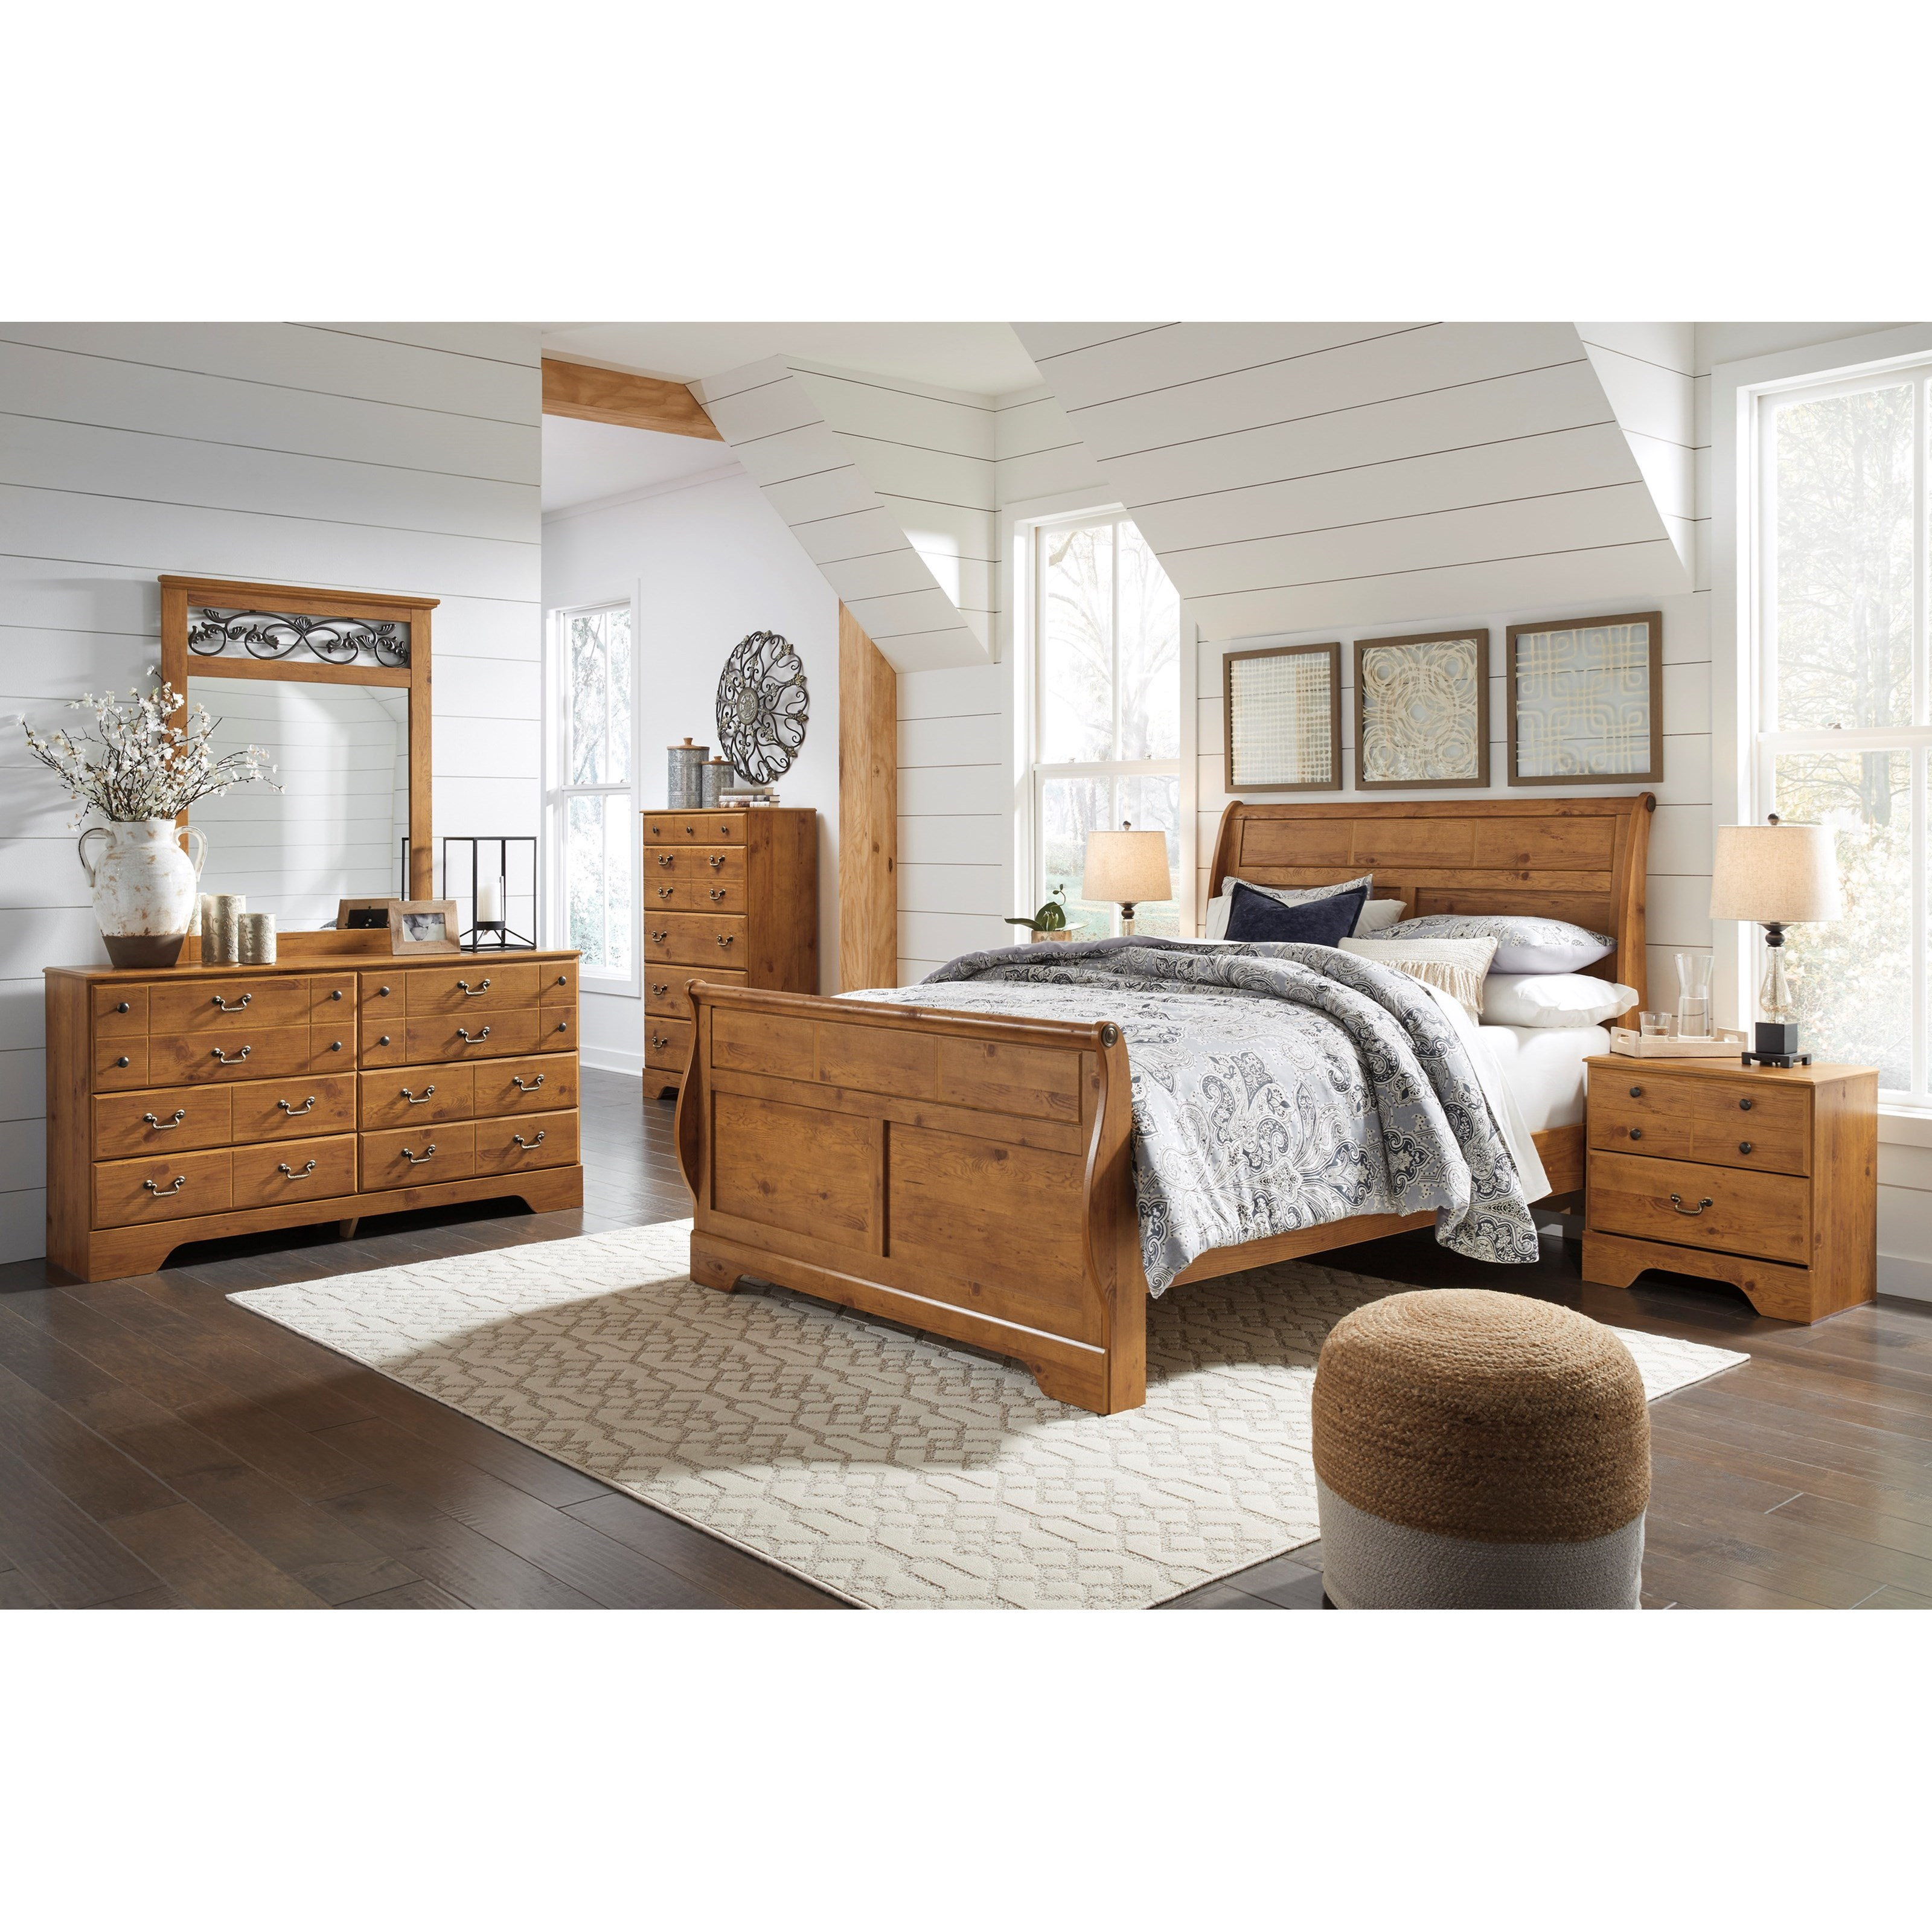 Bittersweet Queen Bedroom Group by Signature Design by Ashley at Furniture Barn